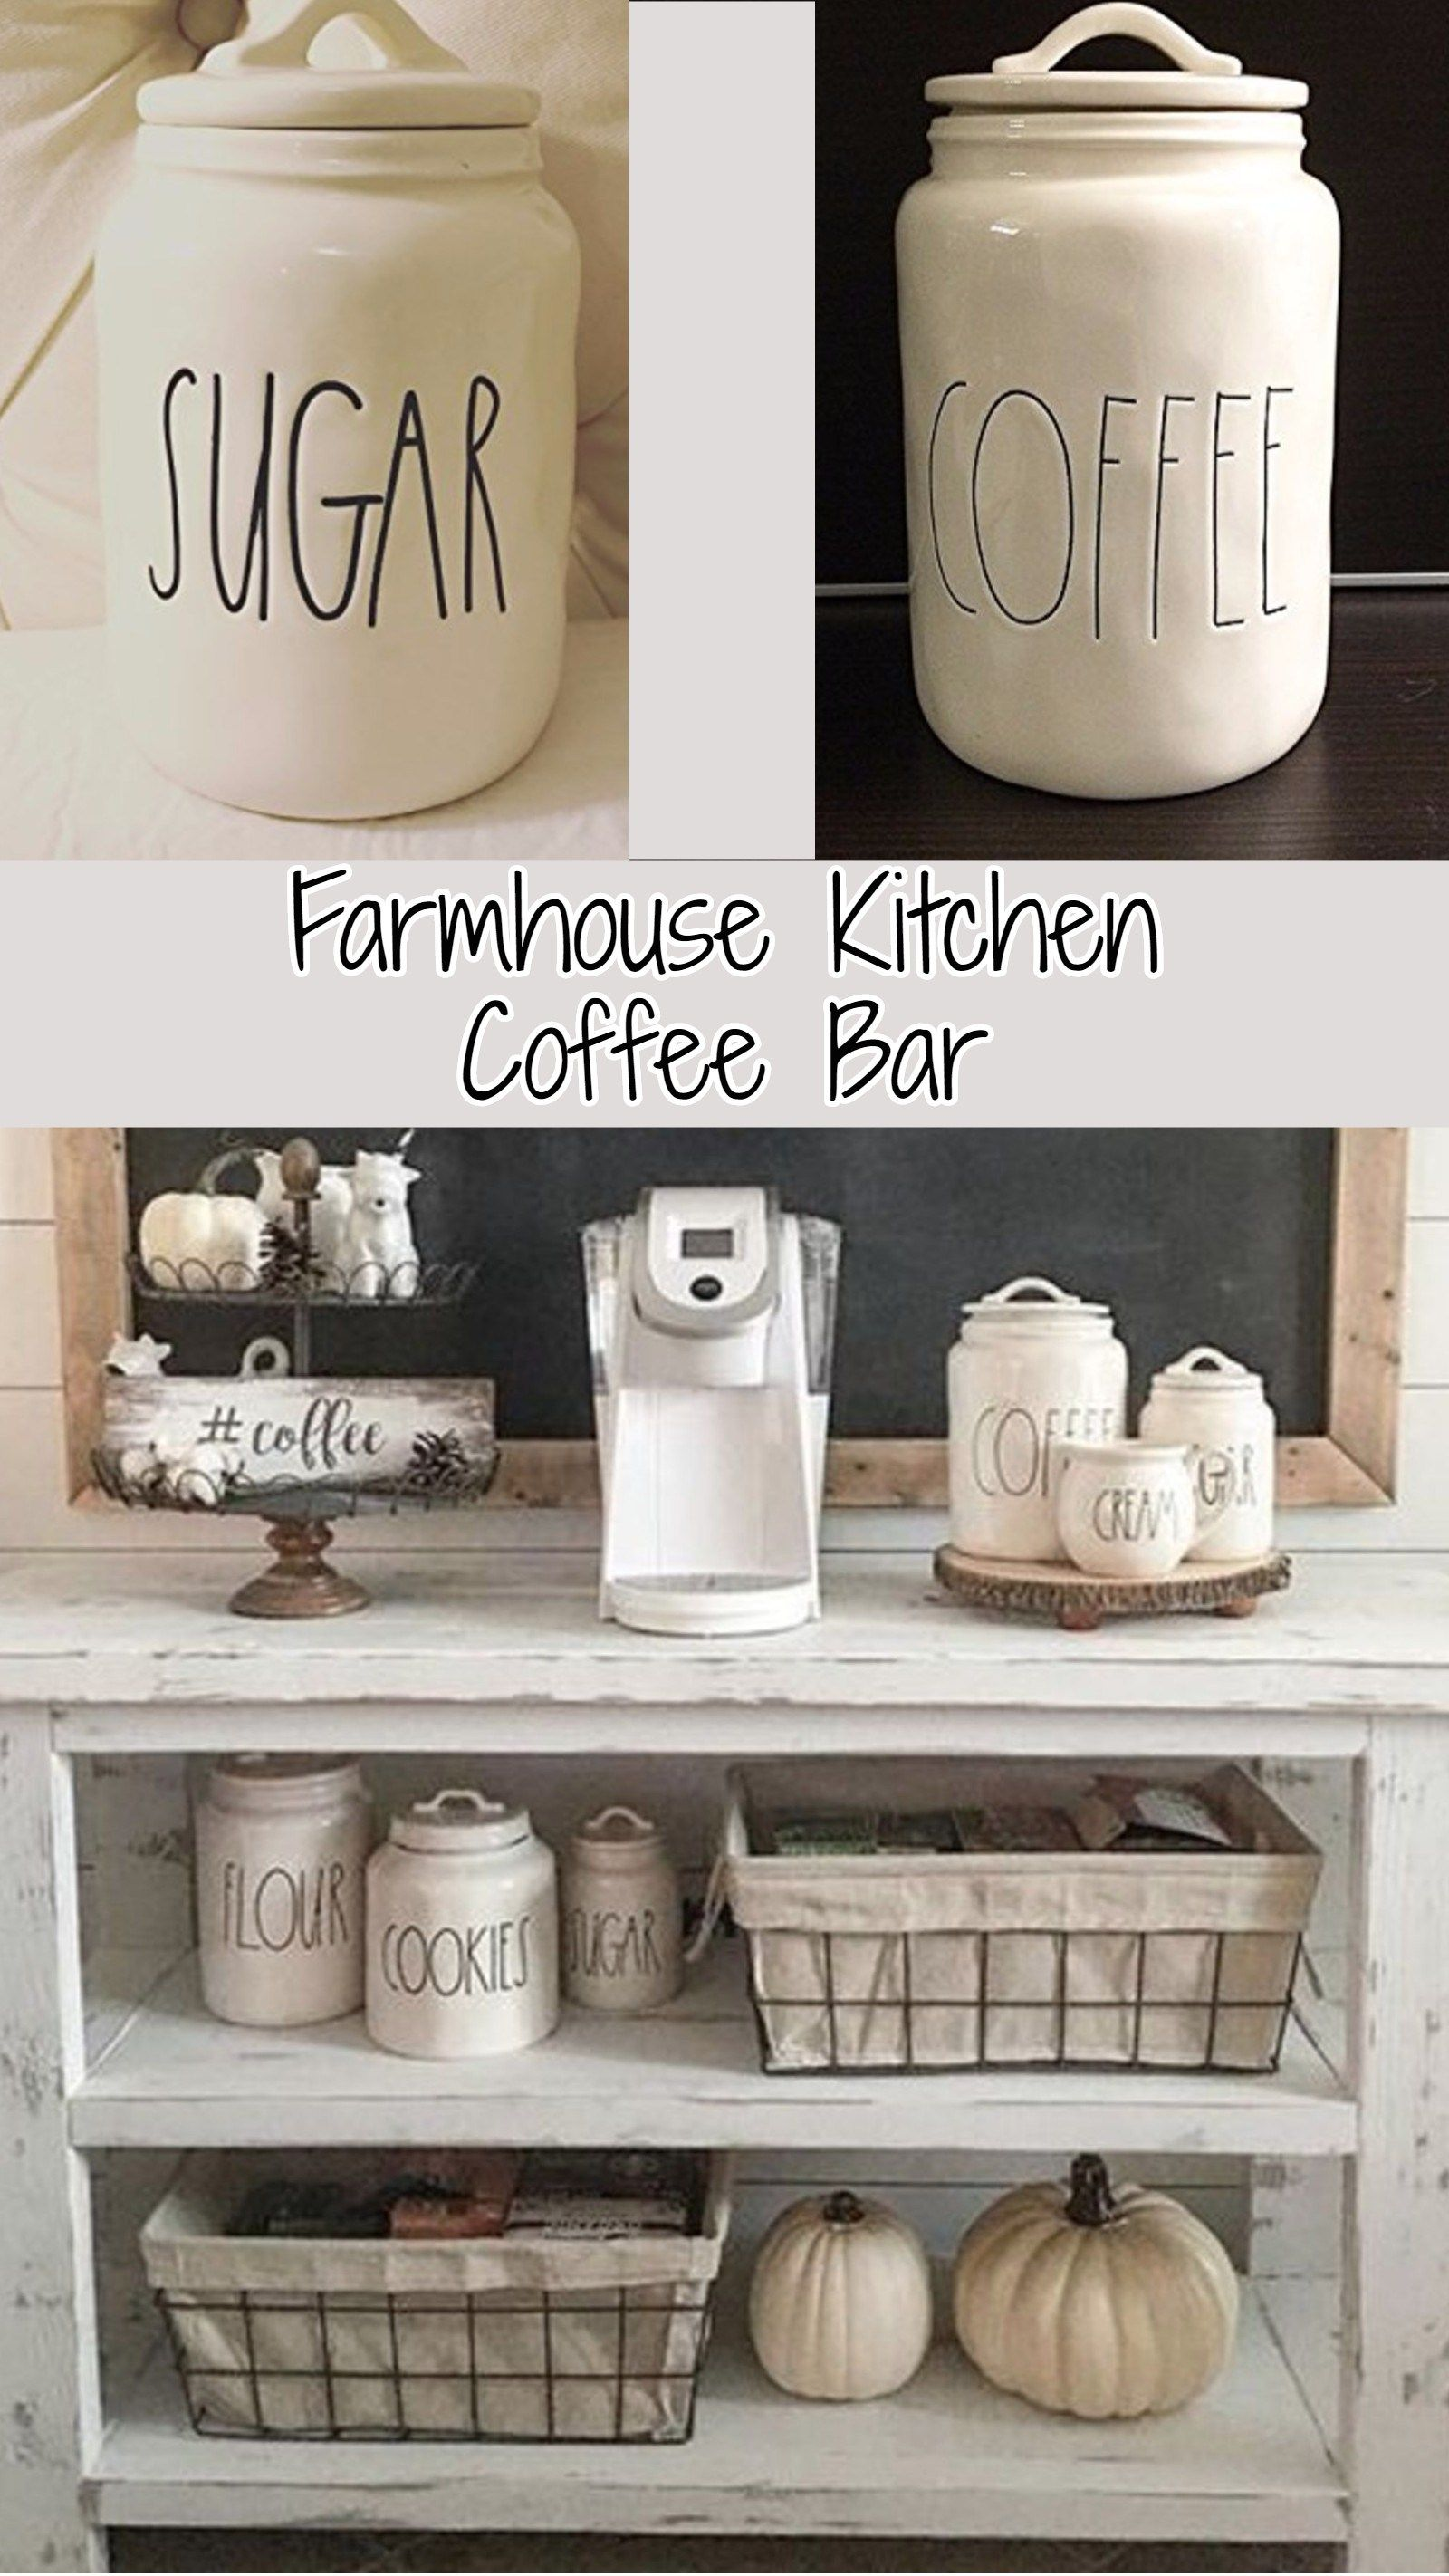 Farmhouse Kitchen Baskets Luxury Farmhouse Kitchen Baskets Farmhouse Kitchen Tobacco Baske Coffee Bars In Kitchen Coffee Kitchen Farmhouse Kitchen Canisters